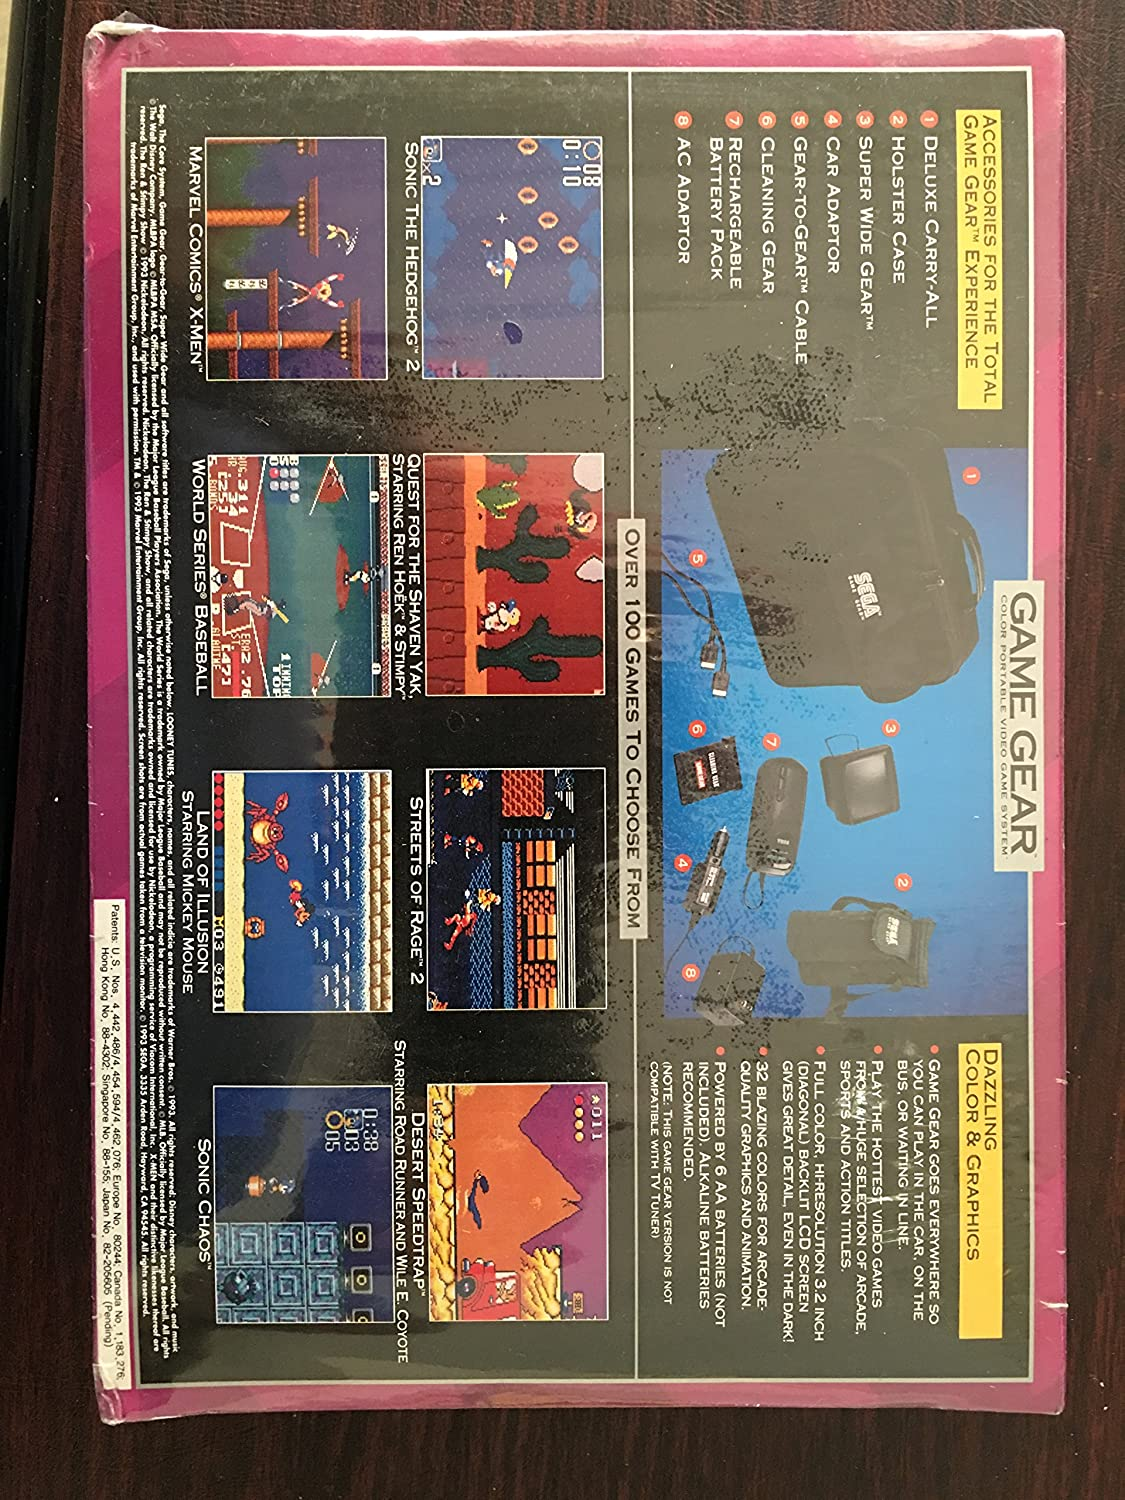 game gear colors : Game Gear Colors 48